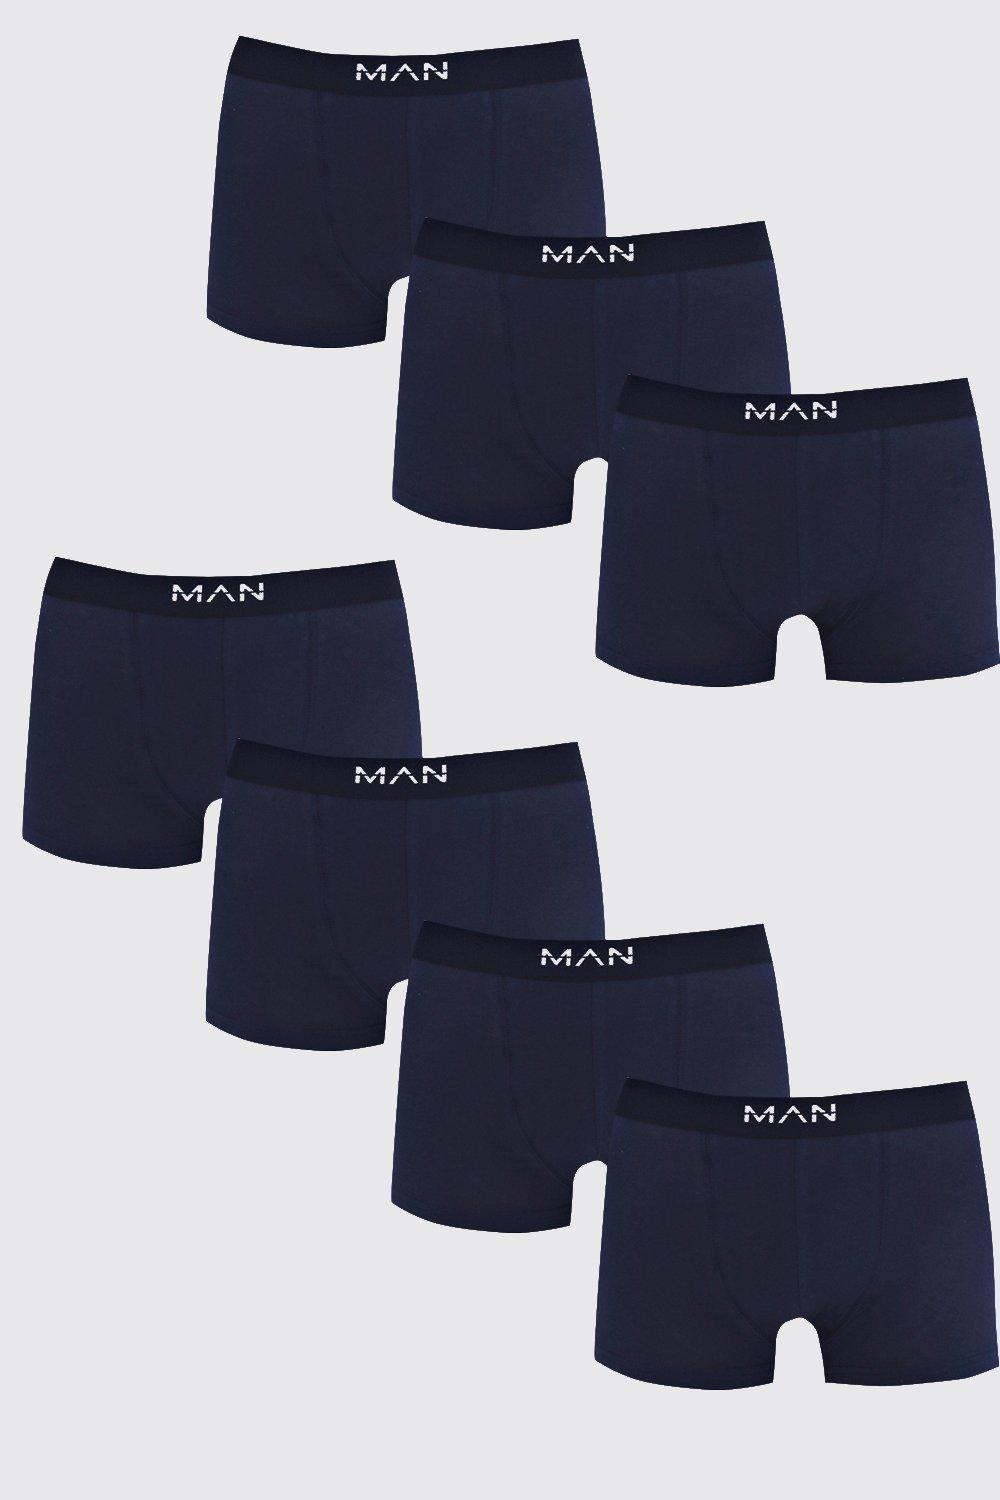 Mzz60285 navy xl